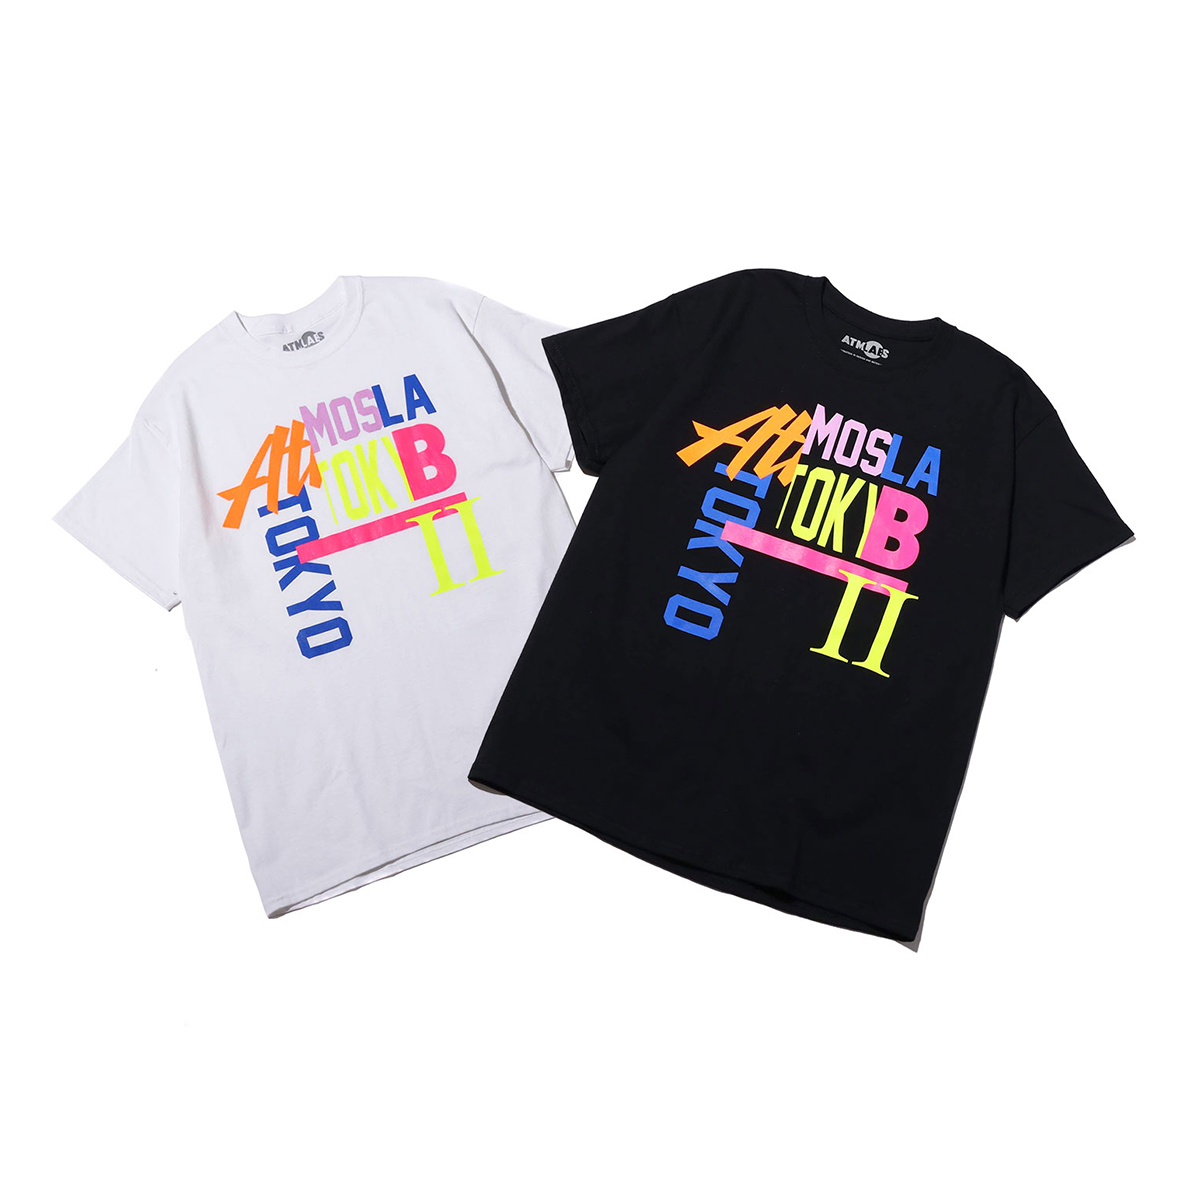 ATMOS LAB MIX LOGO TEE